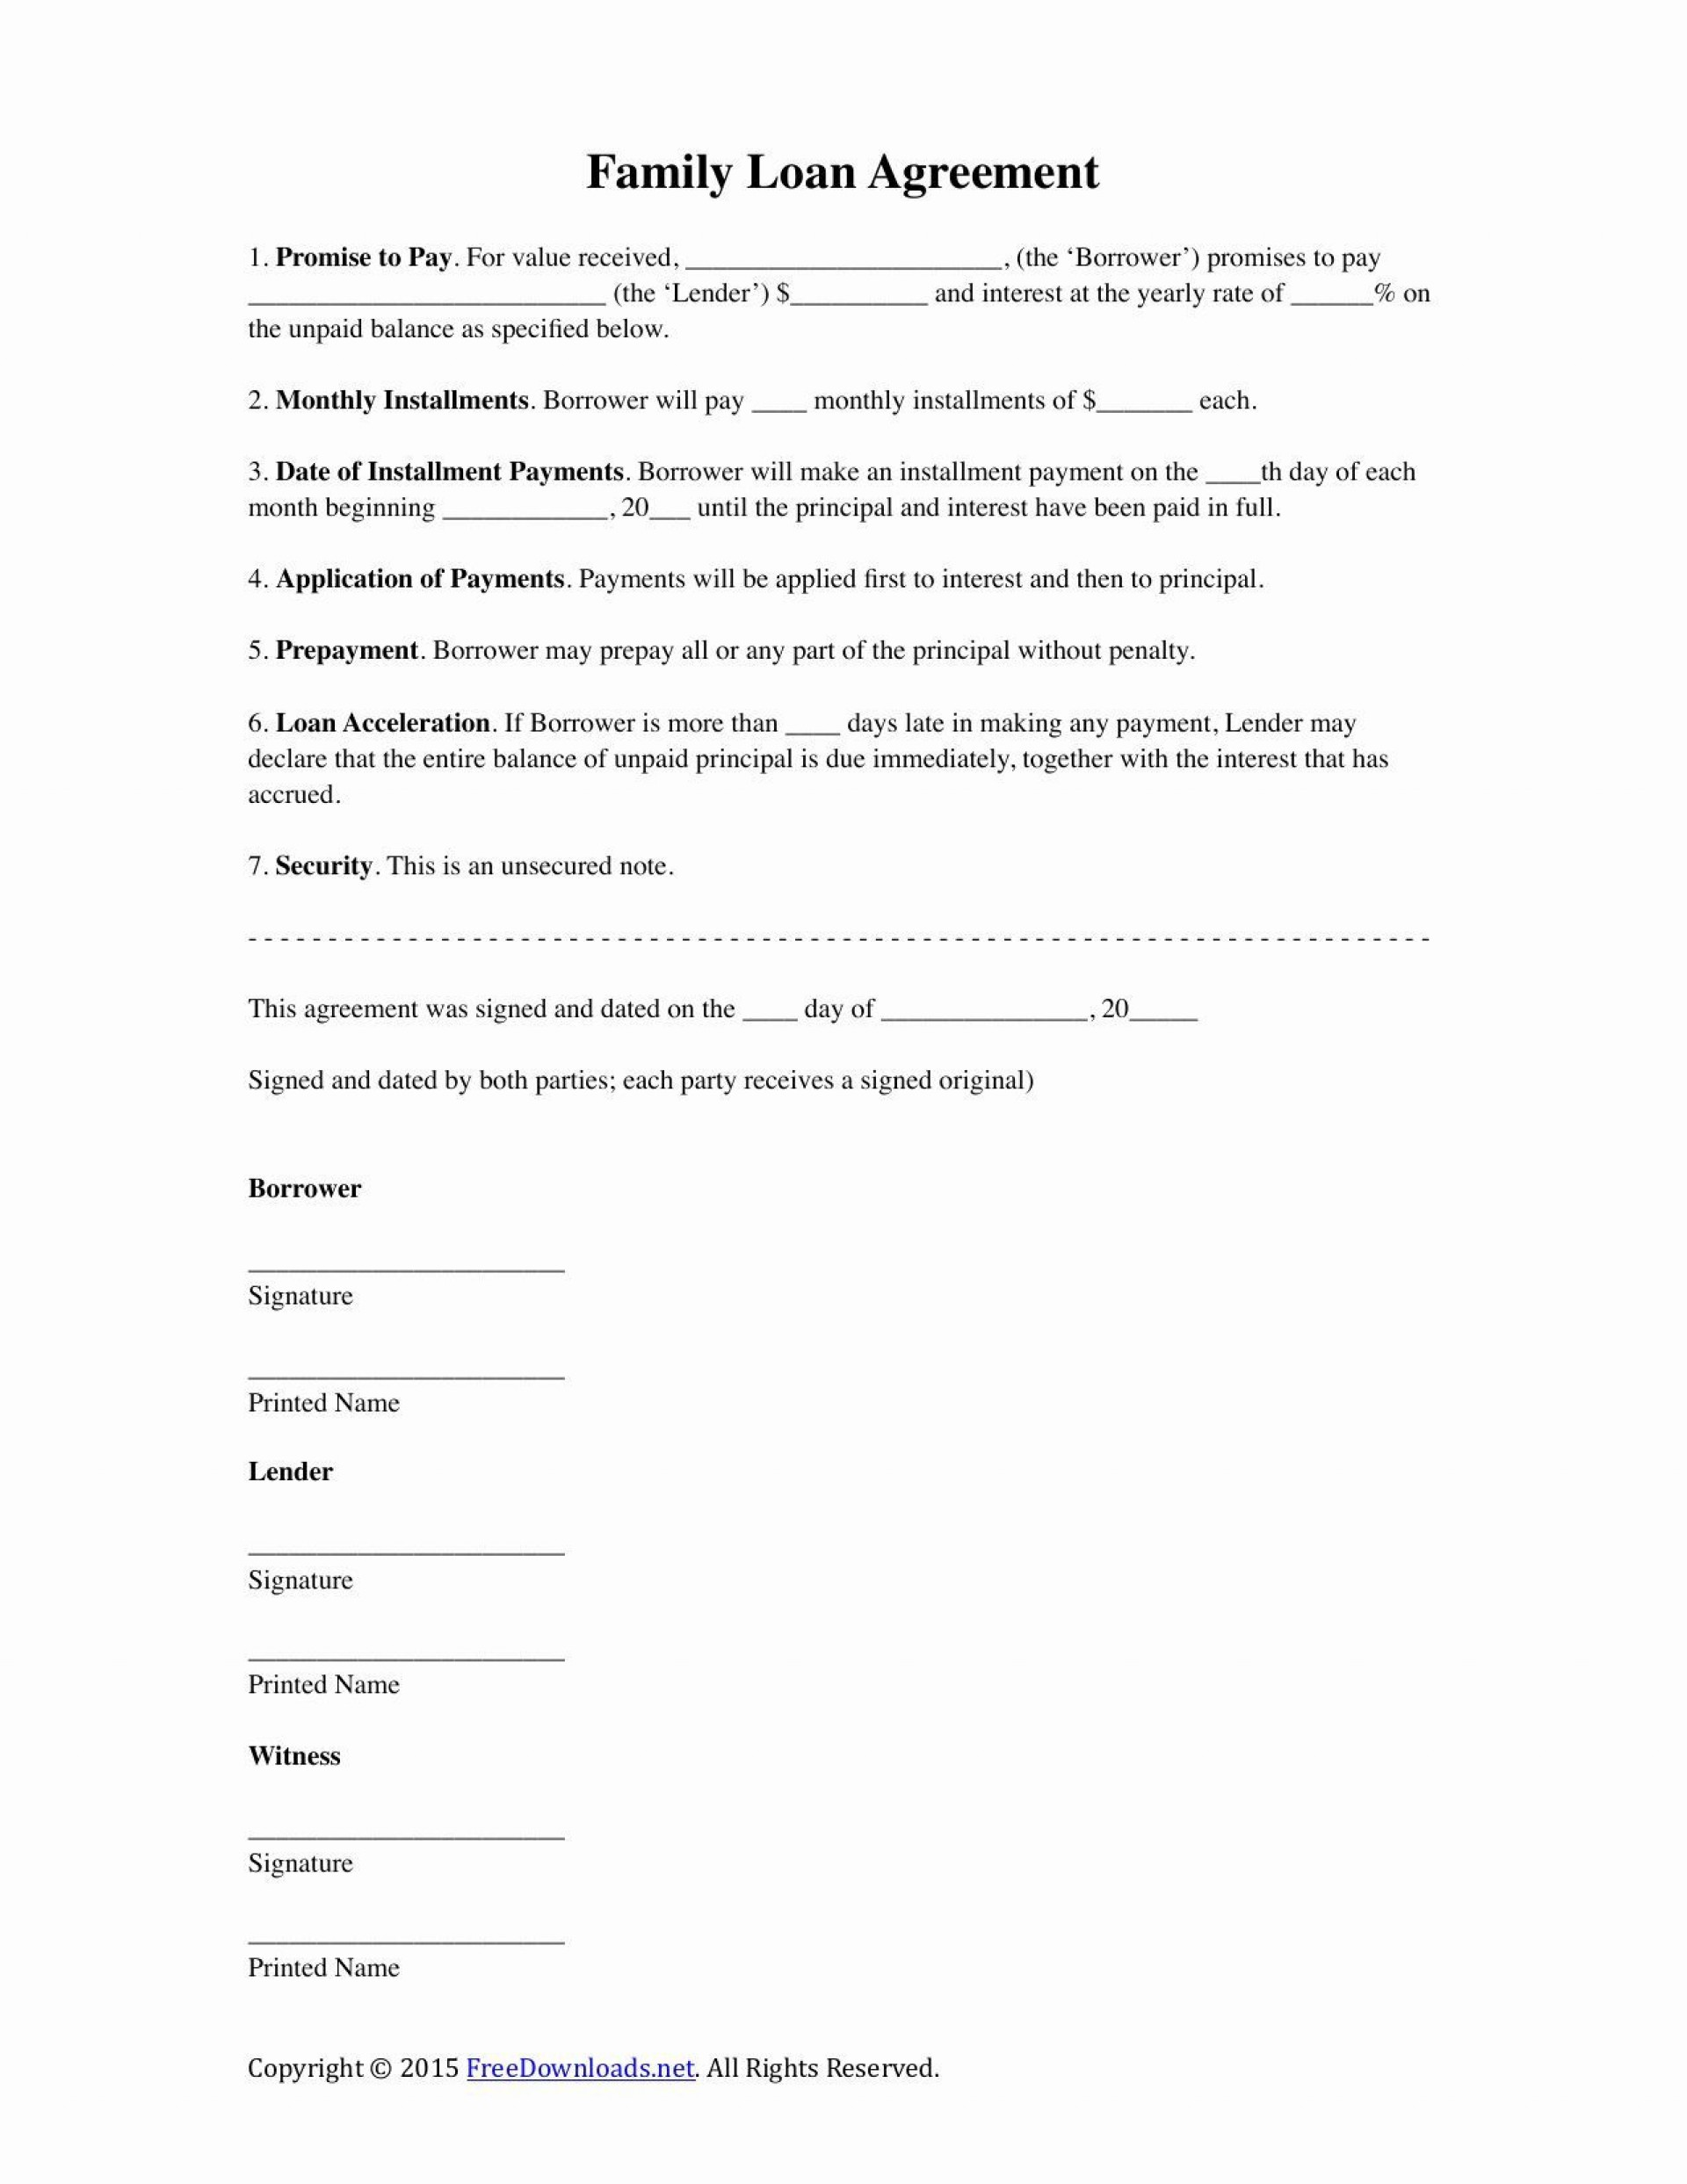 000 Frightening Family Loan Agreement Template Uk Free Picture 1920